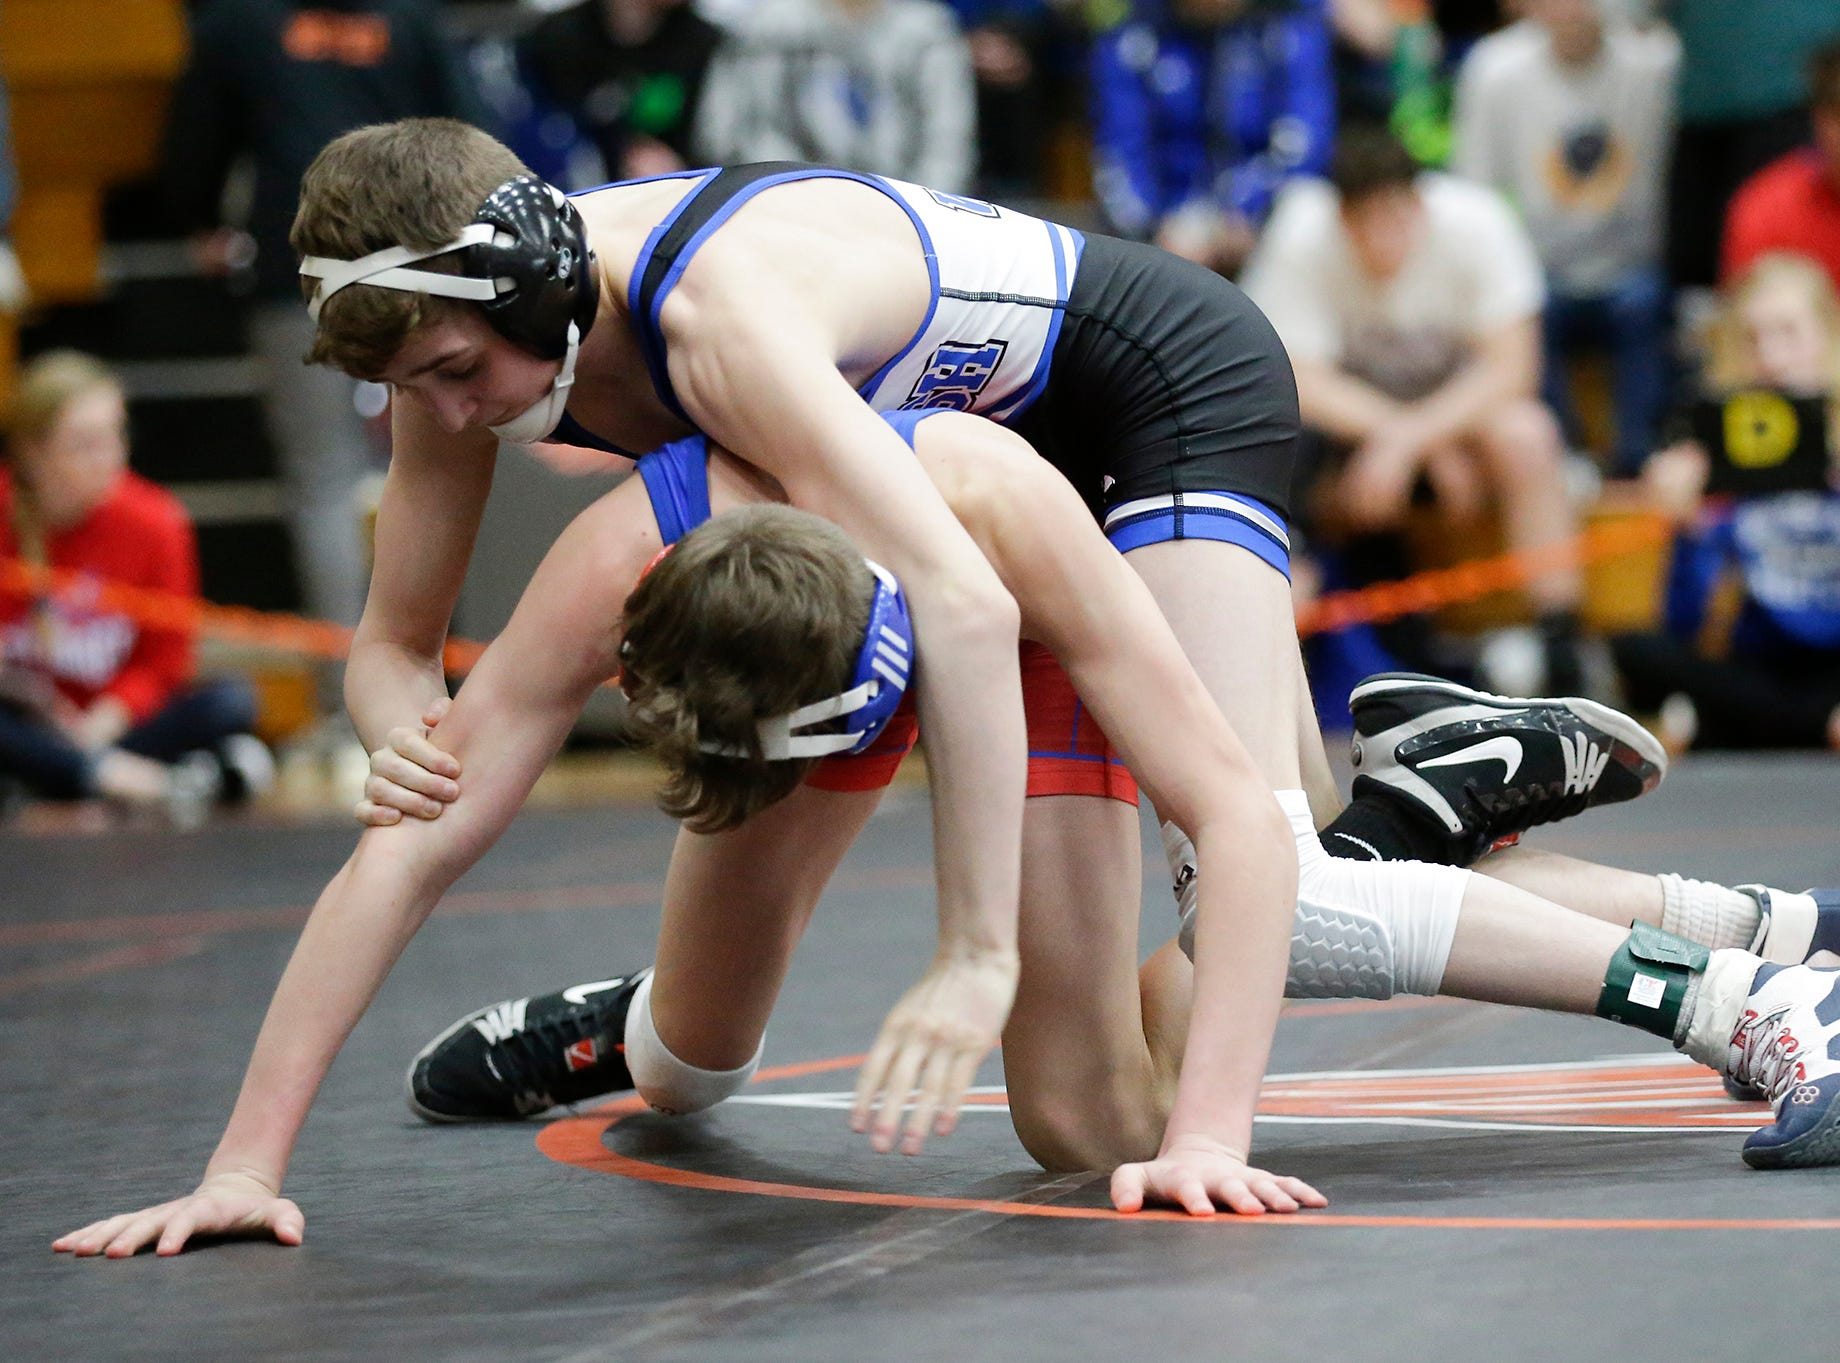 Alec Hunter of Oshkosh West High School wrestles Carter Ziebell of Slinger High School in the 106 pound weight class during the WIAA sectionals Saturday, February 16, 2019 in Hartford, Wis. Hunter won with a score of 5-3. Doug Raflik/USA TODAY NETWORK-Wisconsin